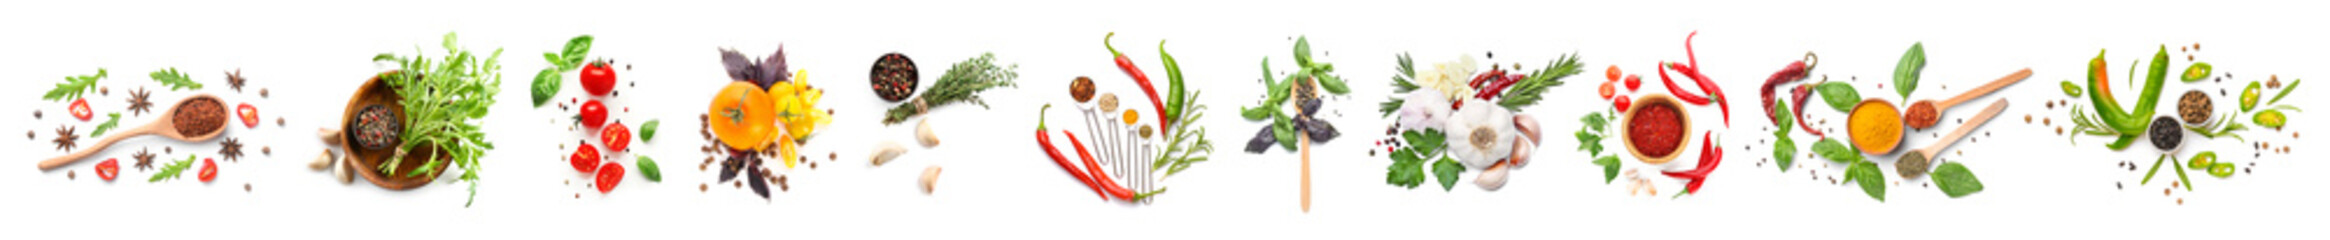 Canvas Prints Fresh vegetables Different fresh spices, herbs and vegetables on white background